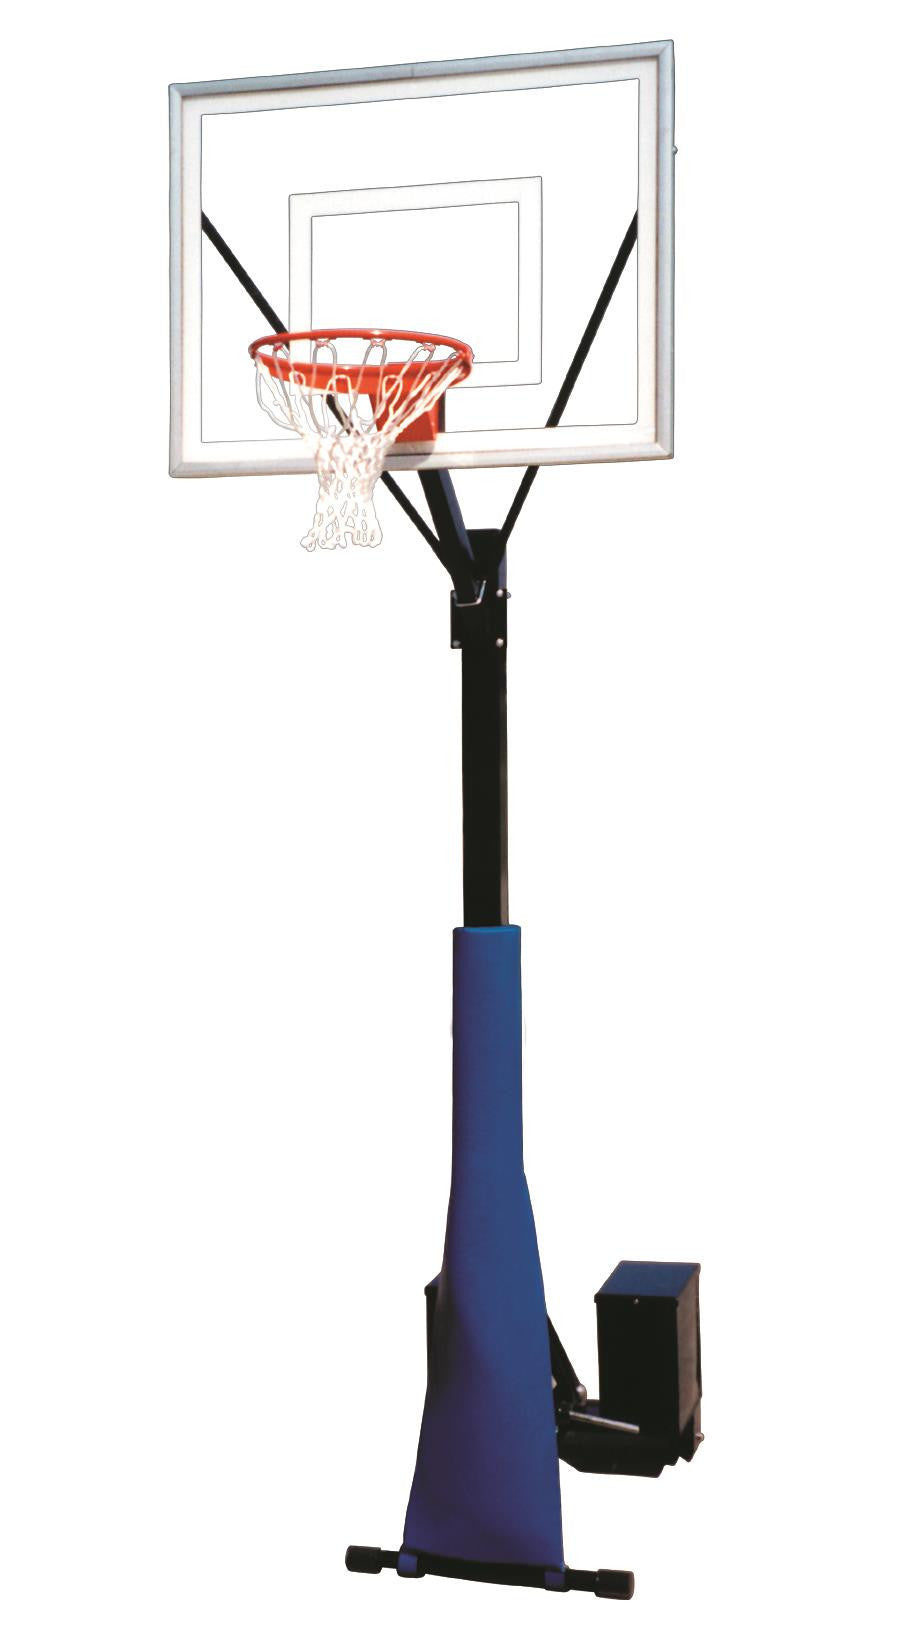 First Team Rolla Sport II Portable Fixed Height Basketball Hoop 48 inch Acrylic